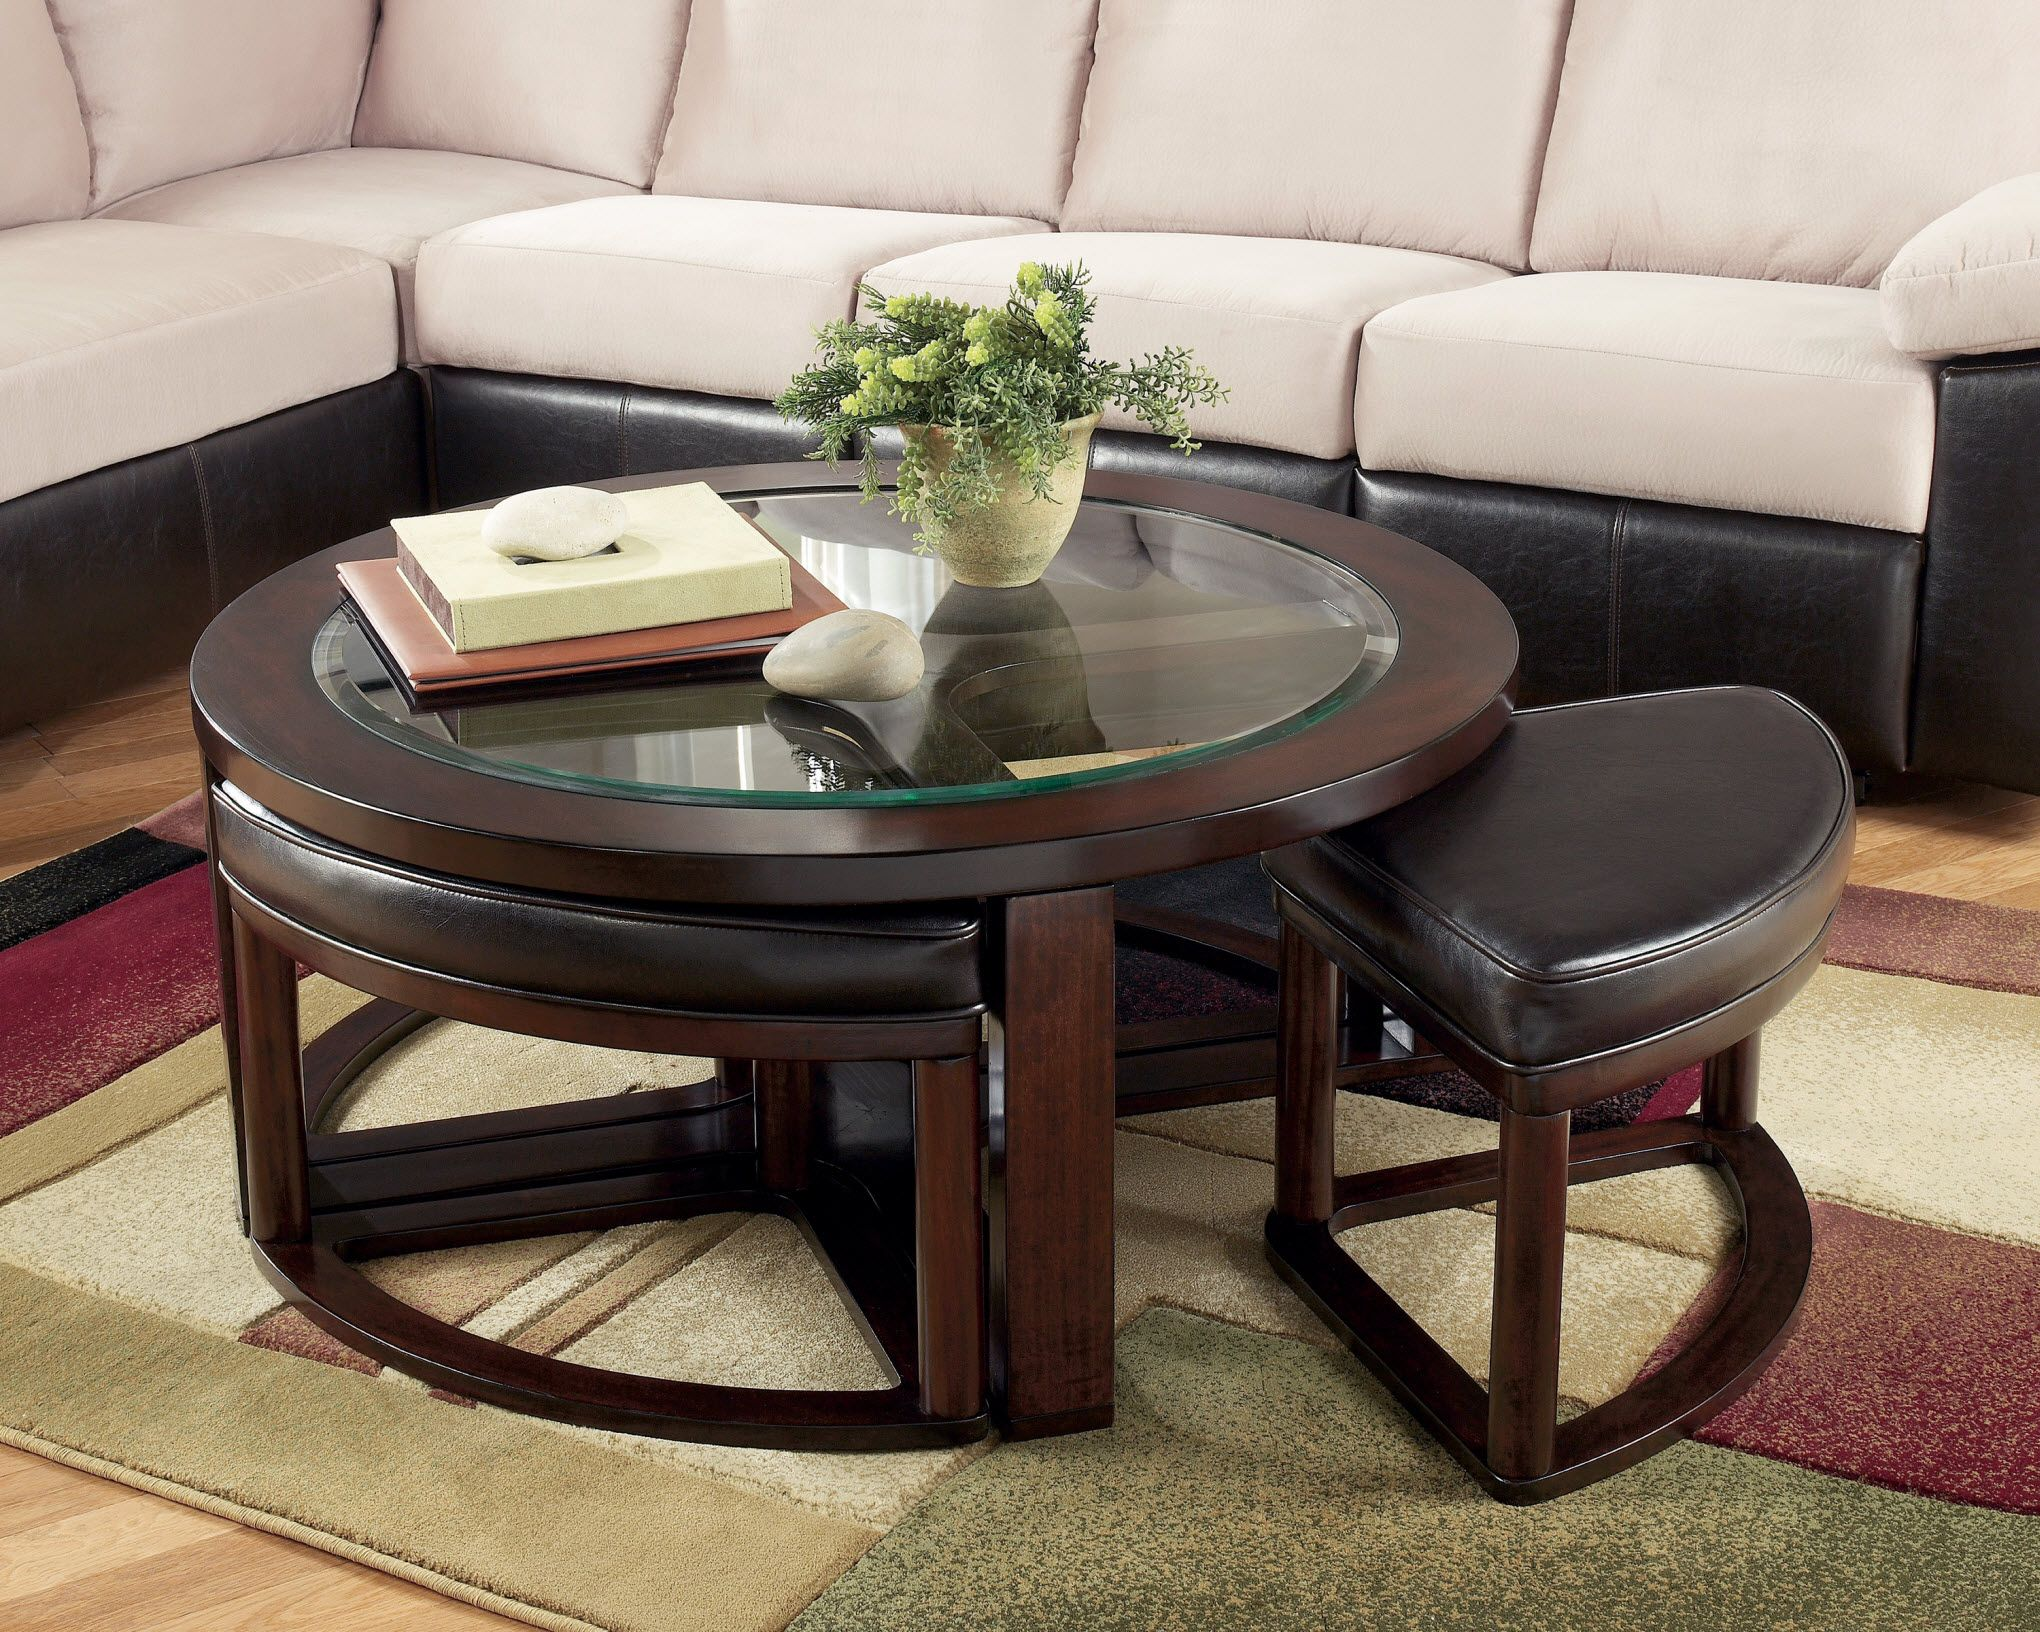 Marion Round Coffee Table With Stools With Images Coffee Table